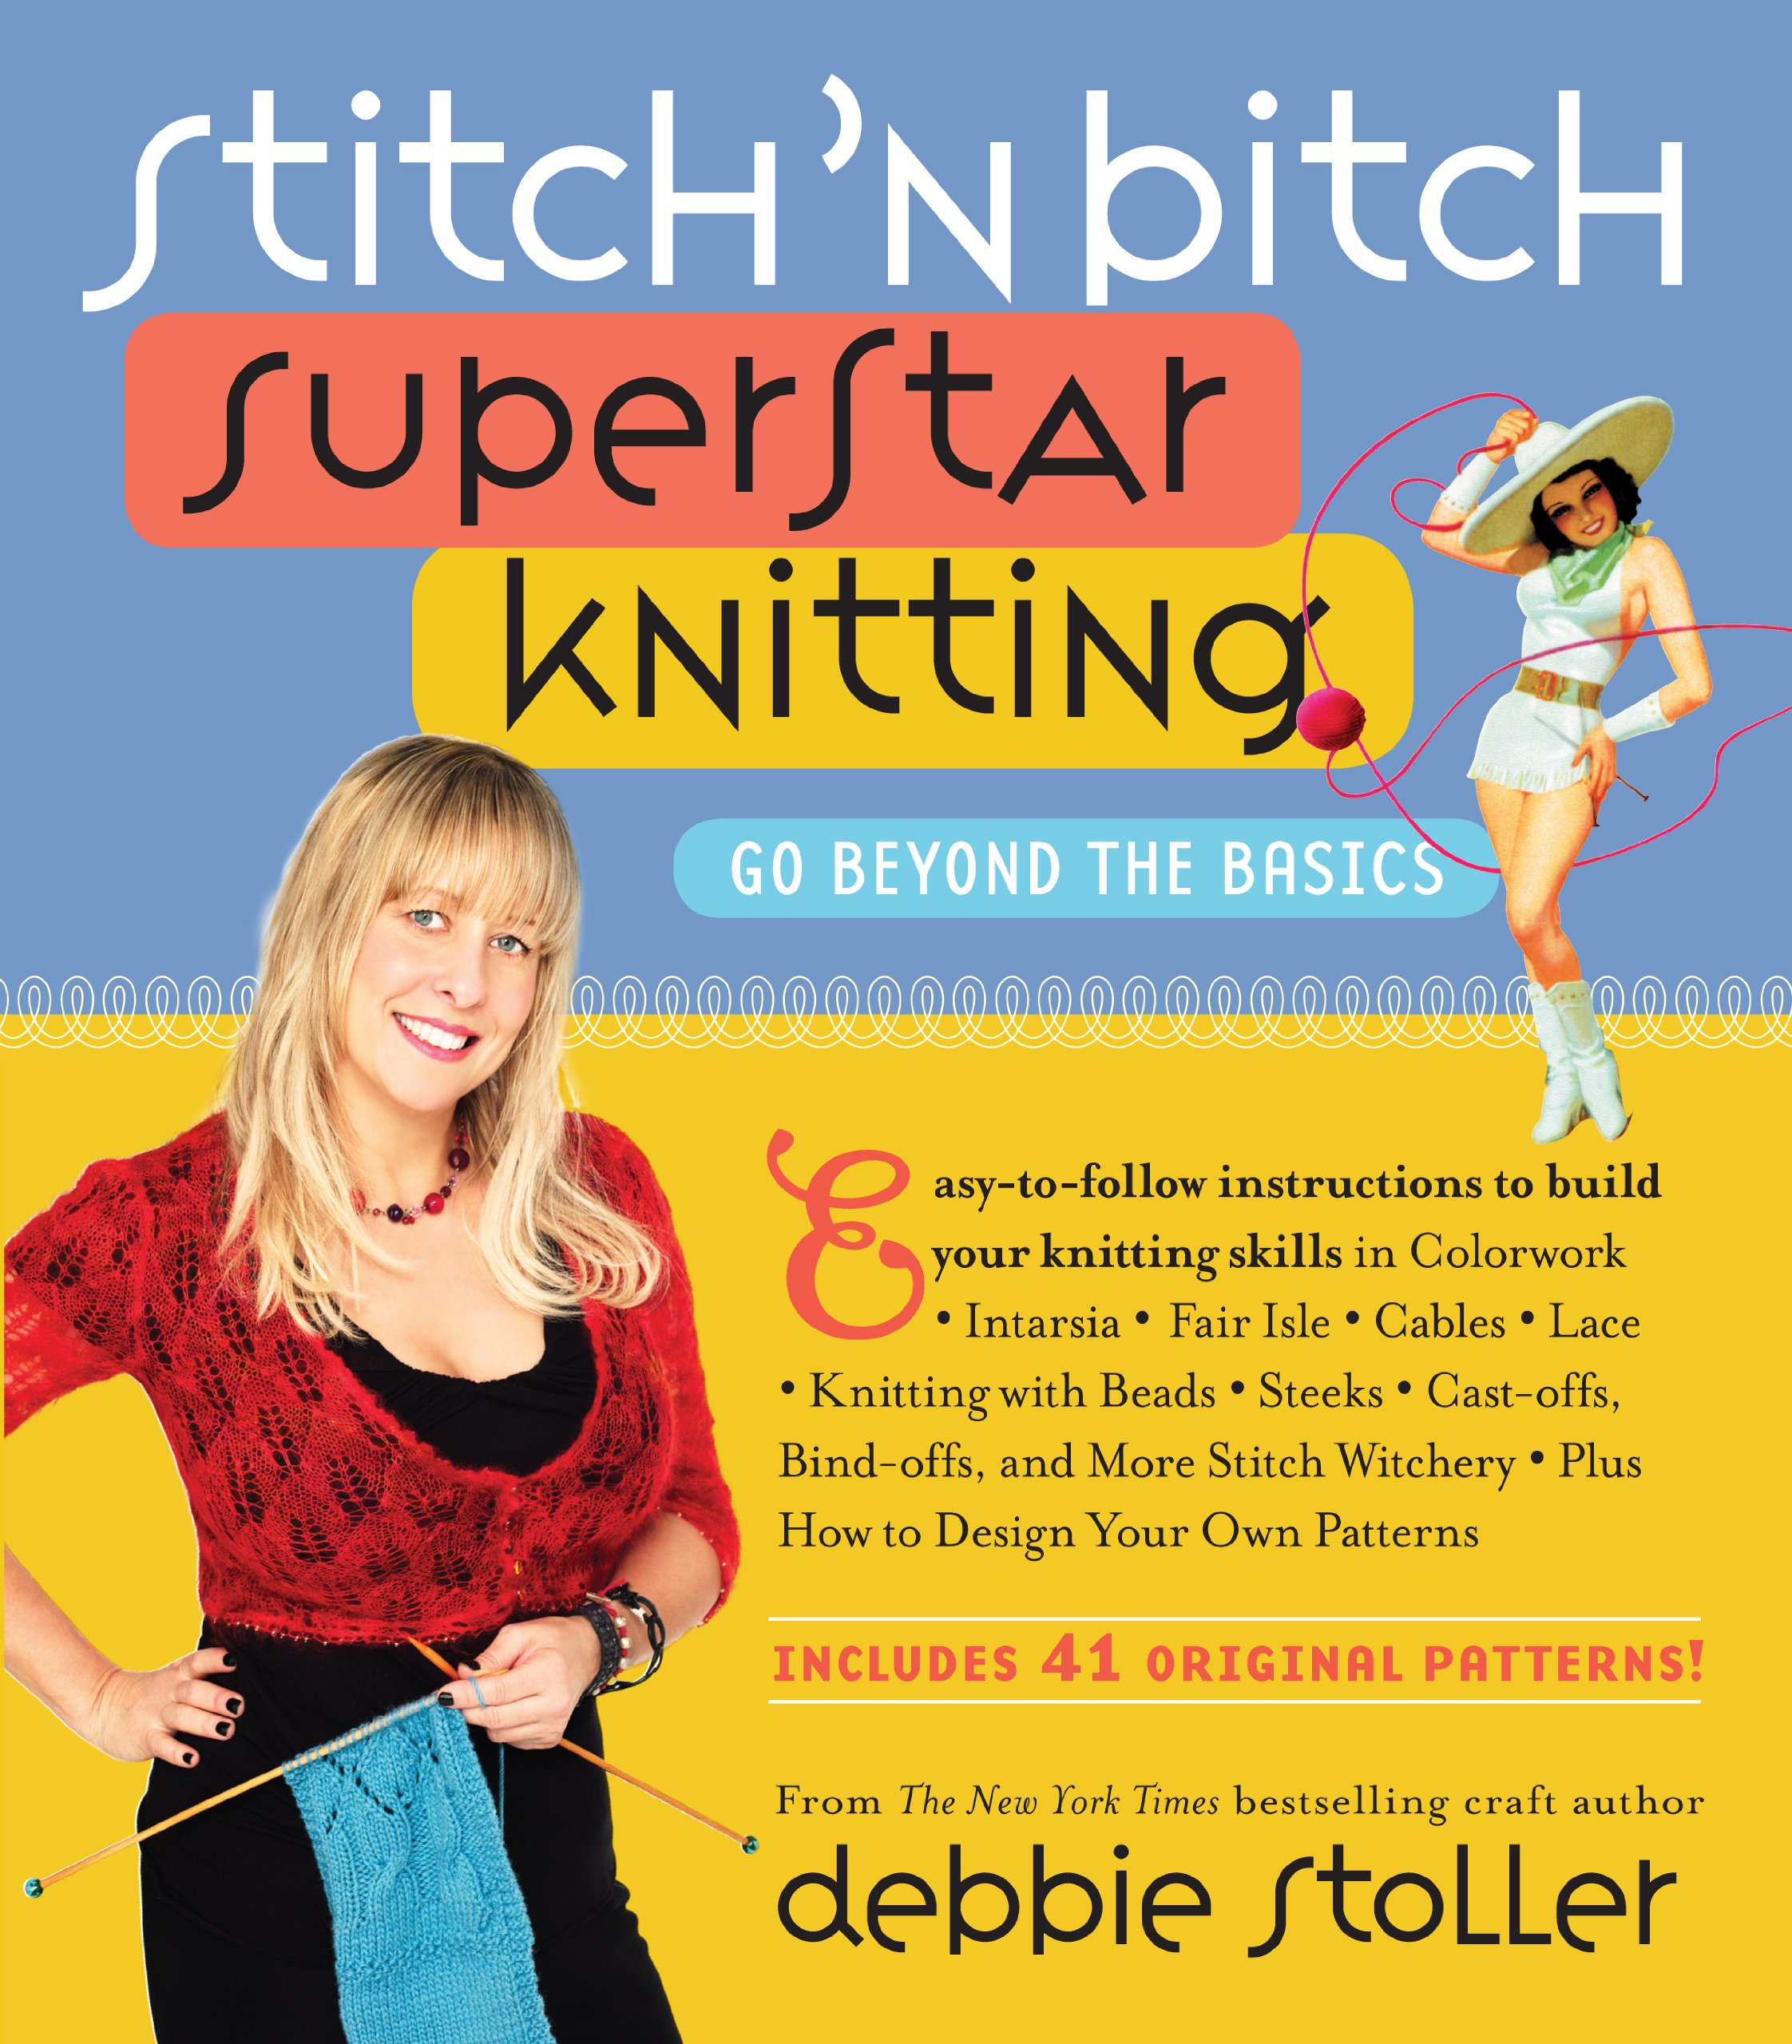 Stitch Bitch Superstar Knitting Beyond product image